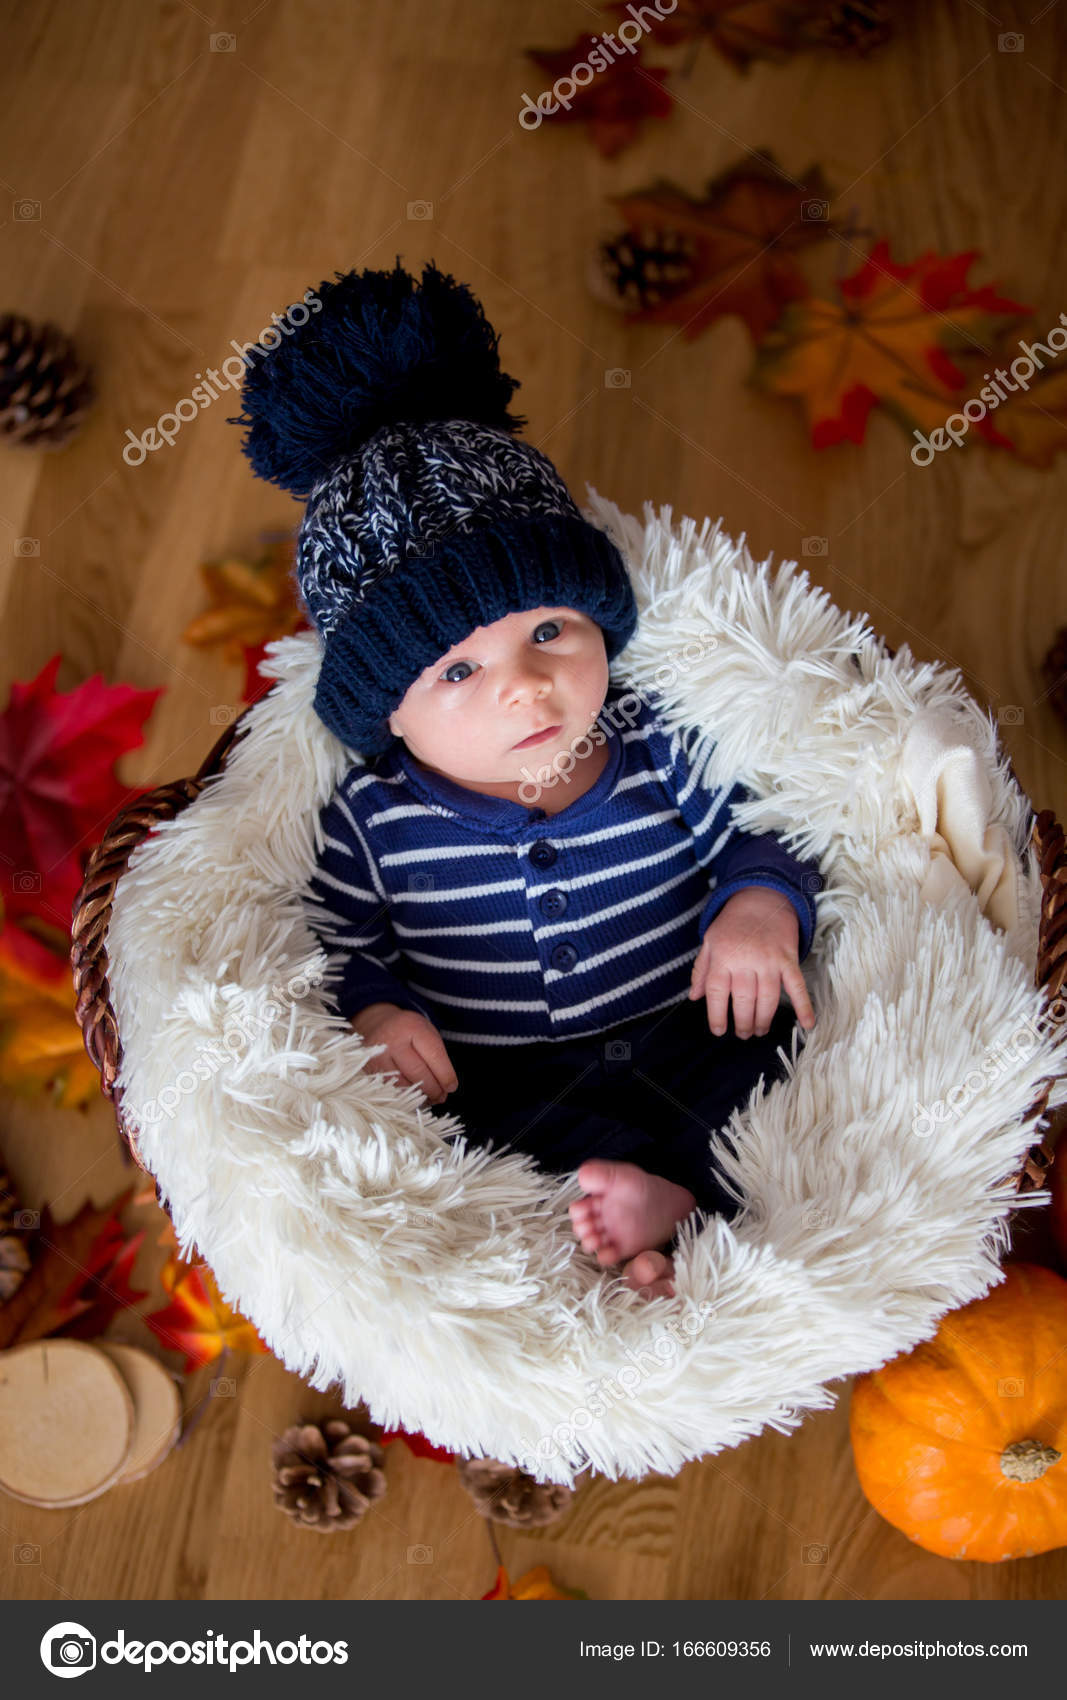 bf73cde8b35 Cute newborn baby boy with knitted hat in a basket — Stock Photo © t ...